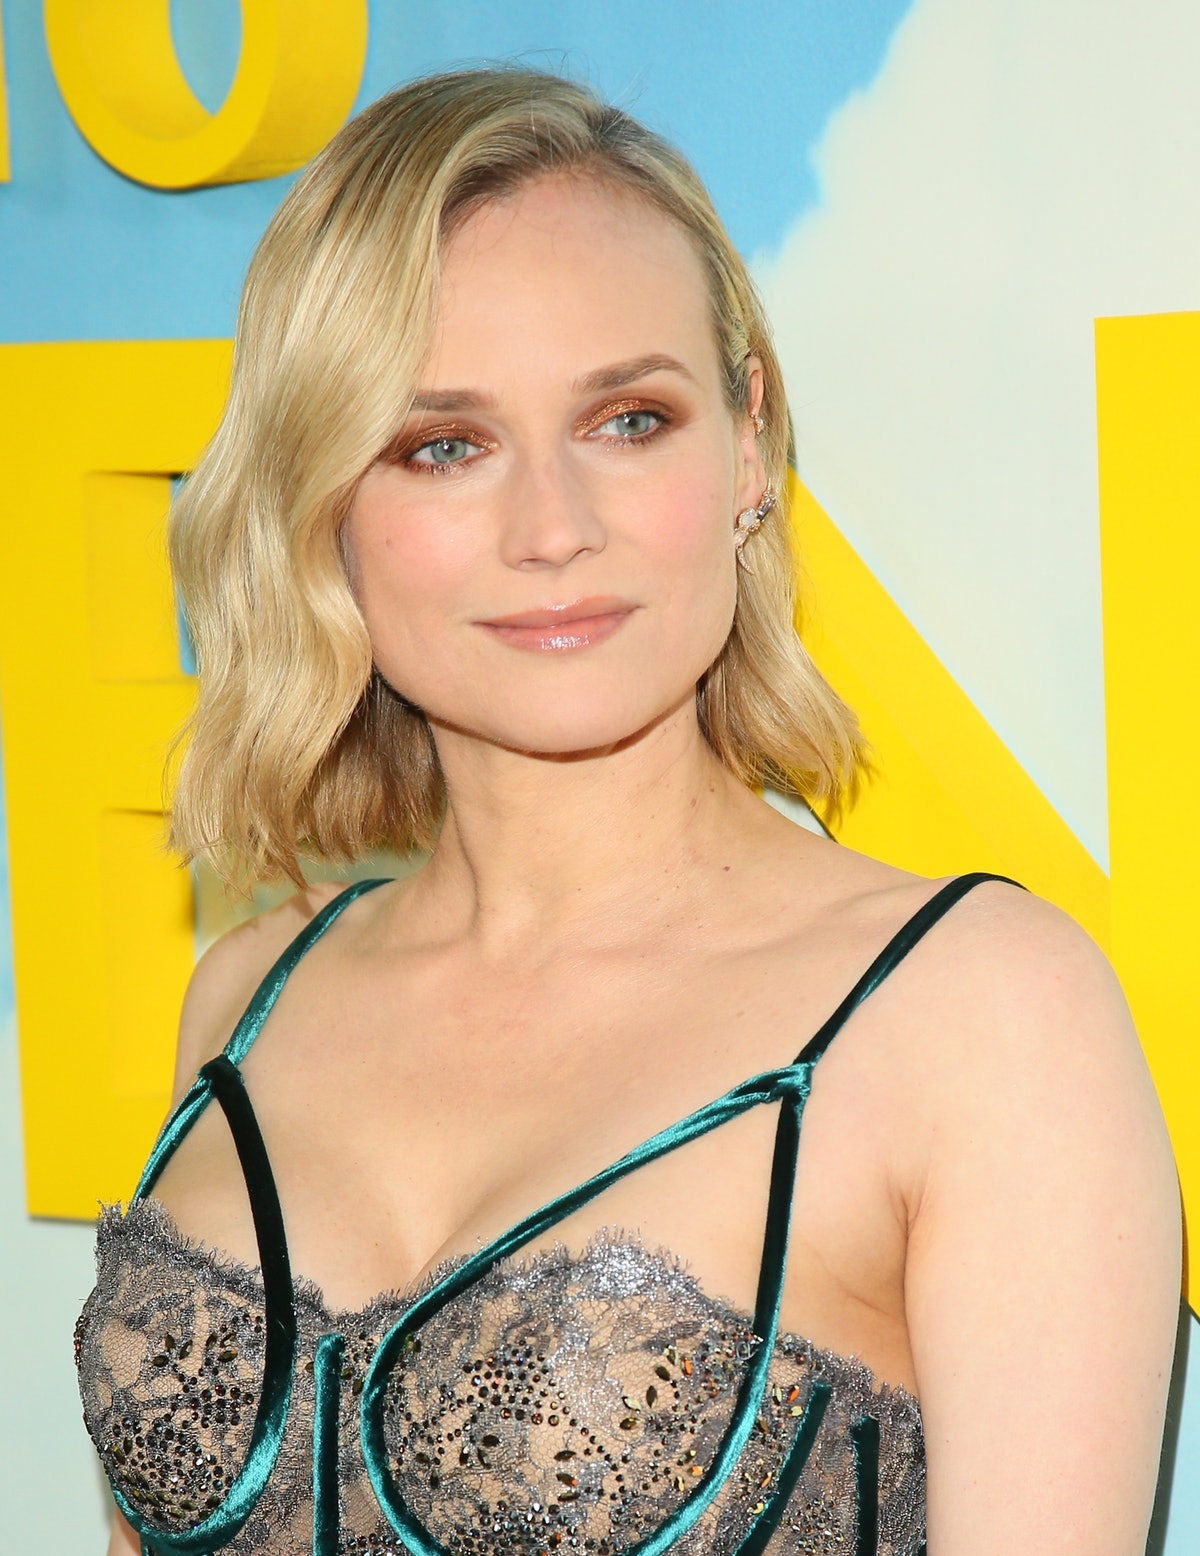 """Diane Kruger Confirmed Her Daughter's Birth By Saying She Feels Like A """"Superhero"""" — VIDEO"""